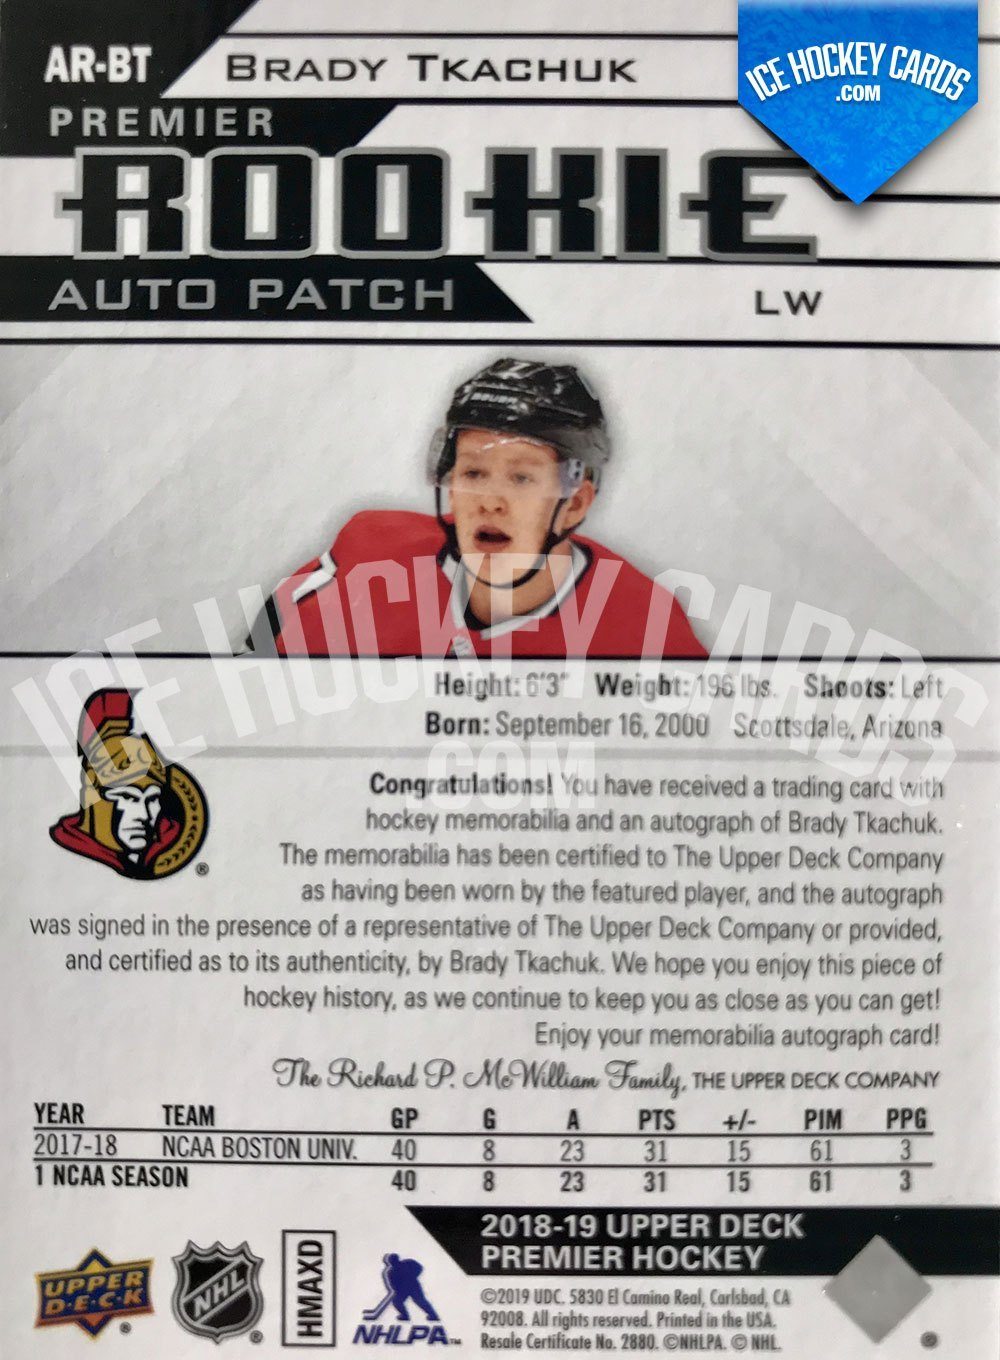 Upper Deck - Premier Hockey 2018-19 - Brady Tkachuk Premier Rookie Auto Patch RC back